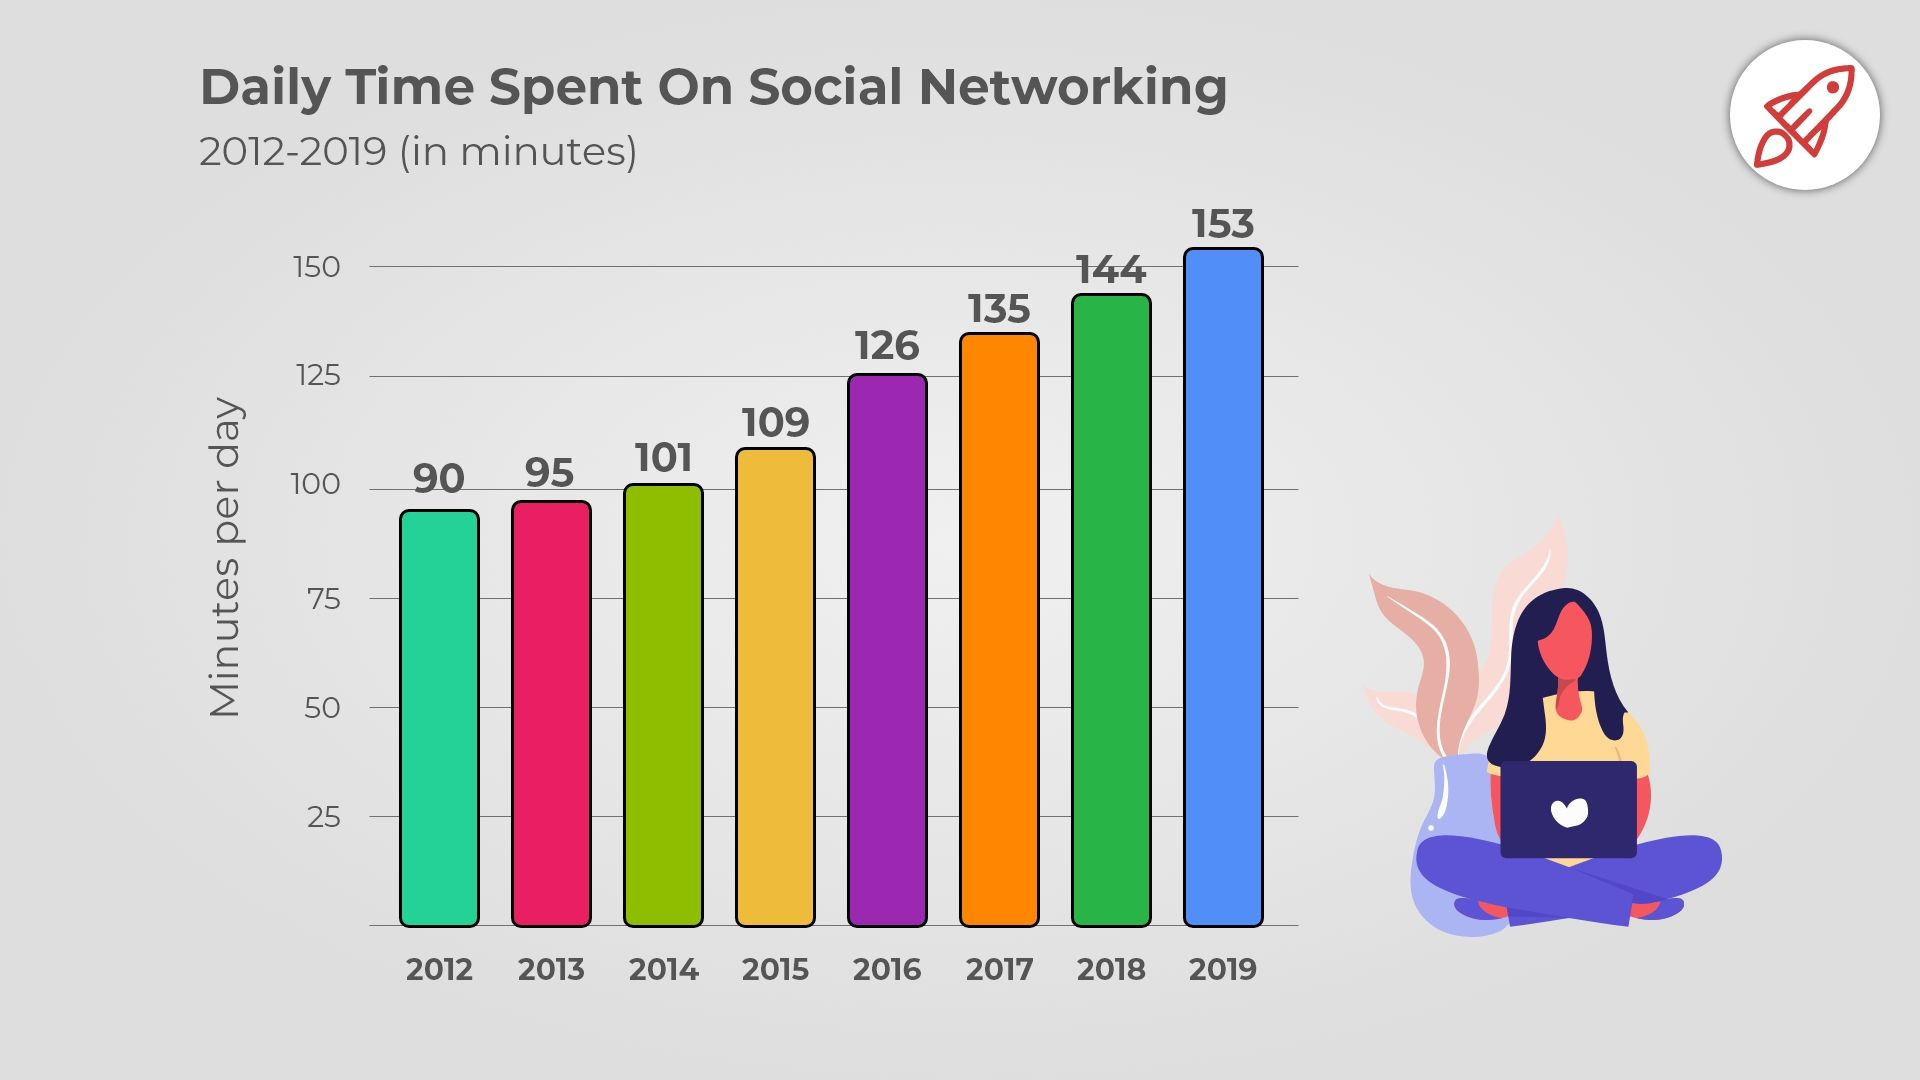 Daily time spent on social networking image by broadbandsearch.net